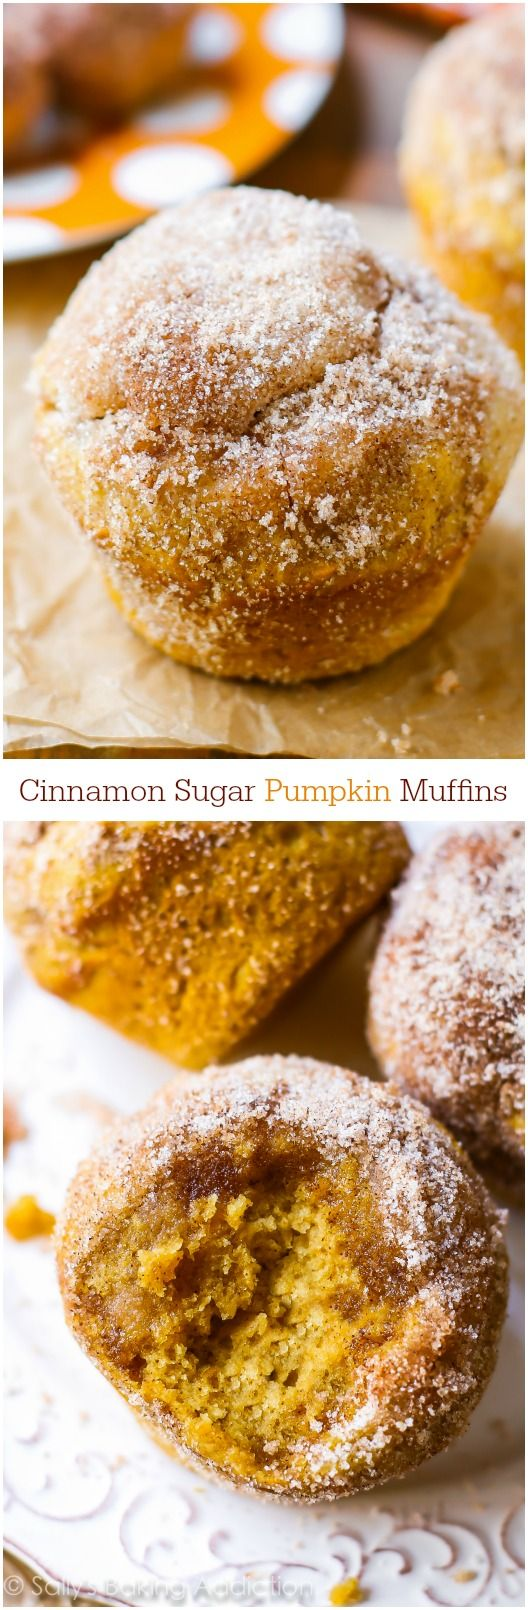 Love these bakery style Cinnamon-Sugar Pumpkin Muffins! I make this recipe year round.: